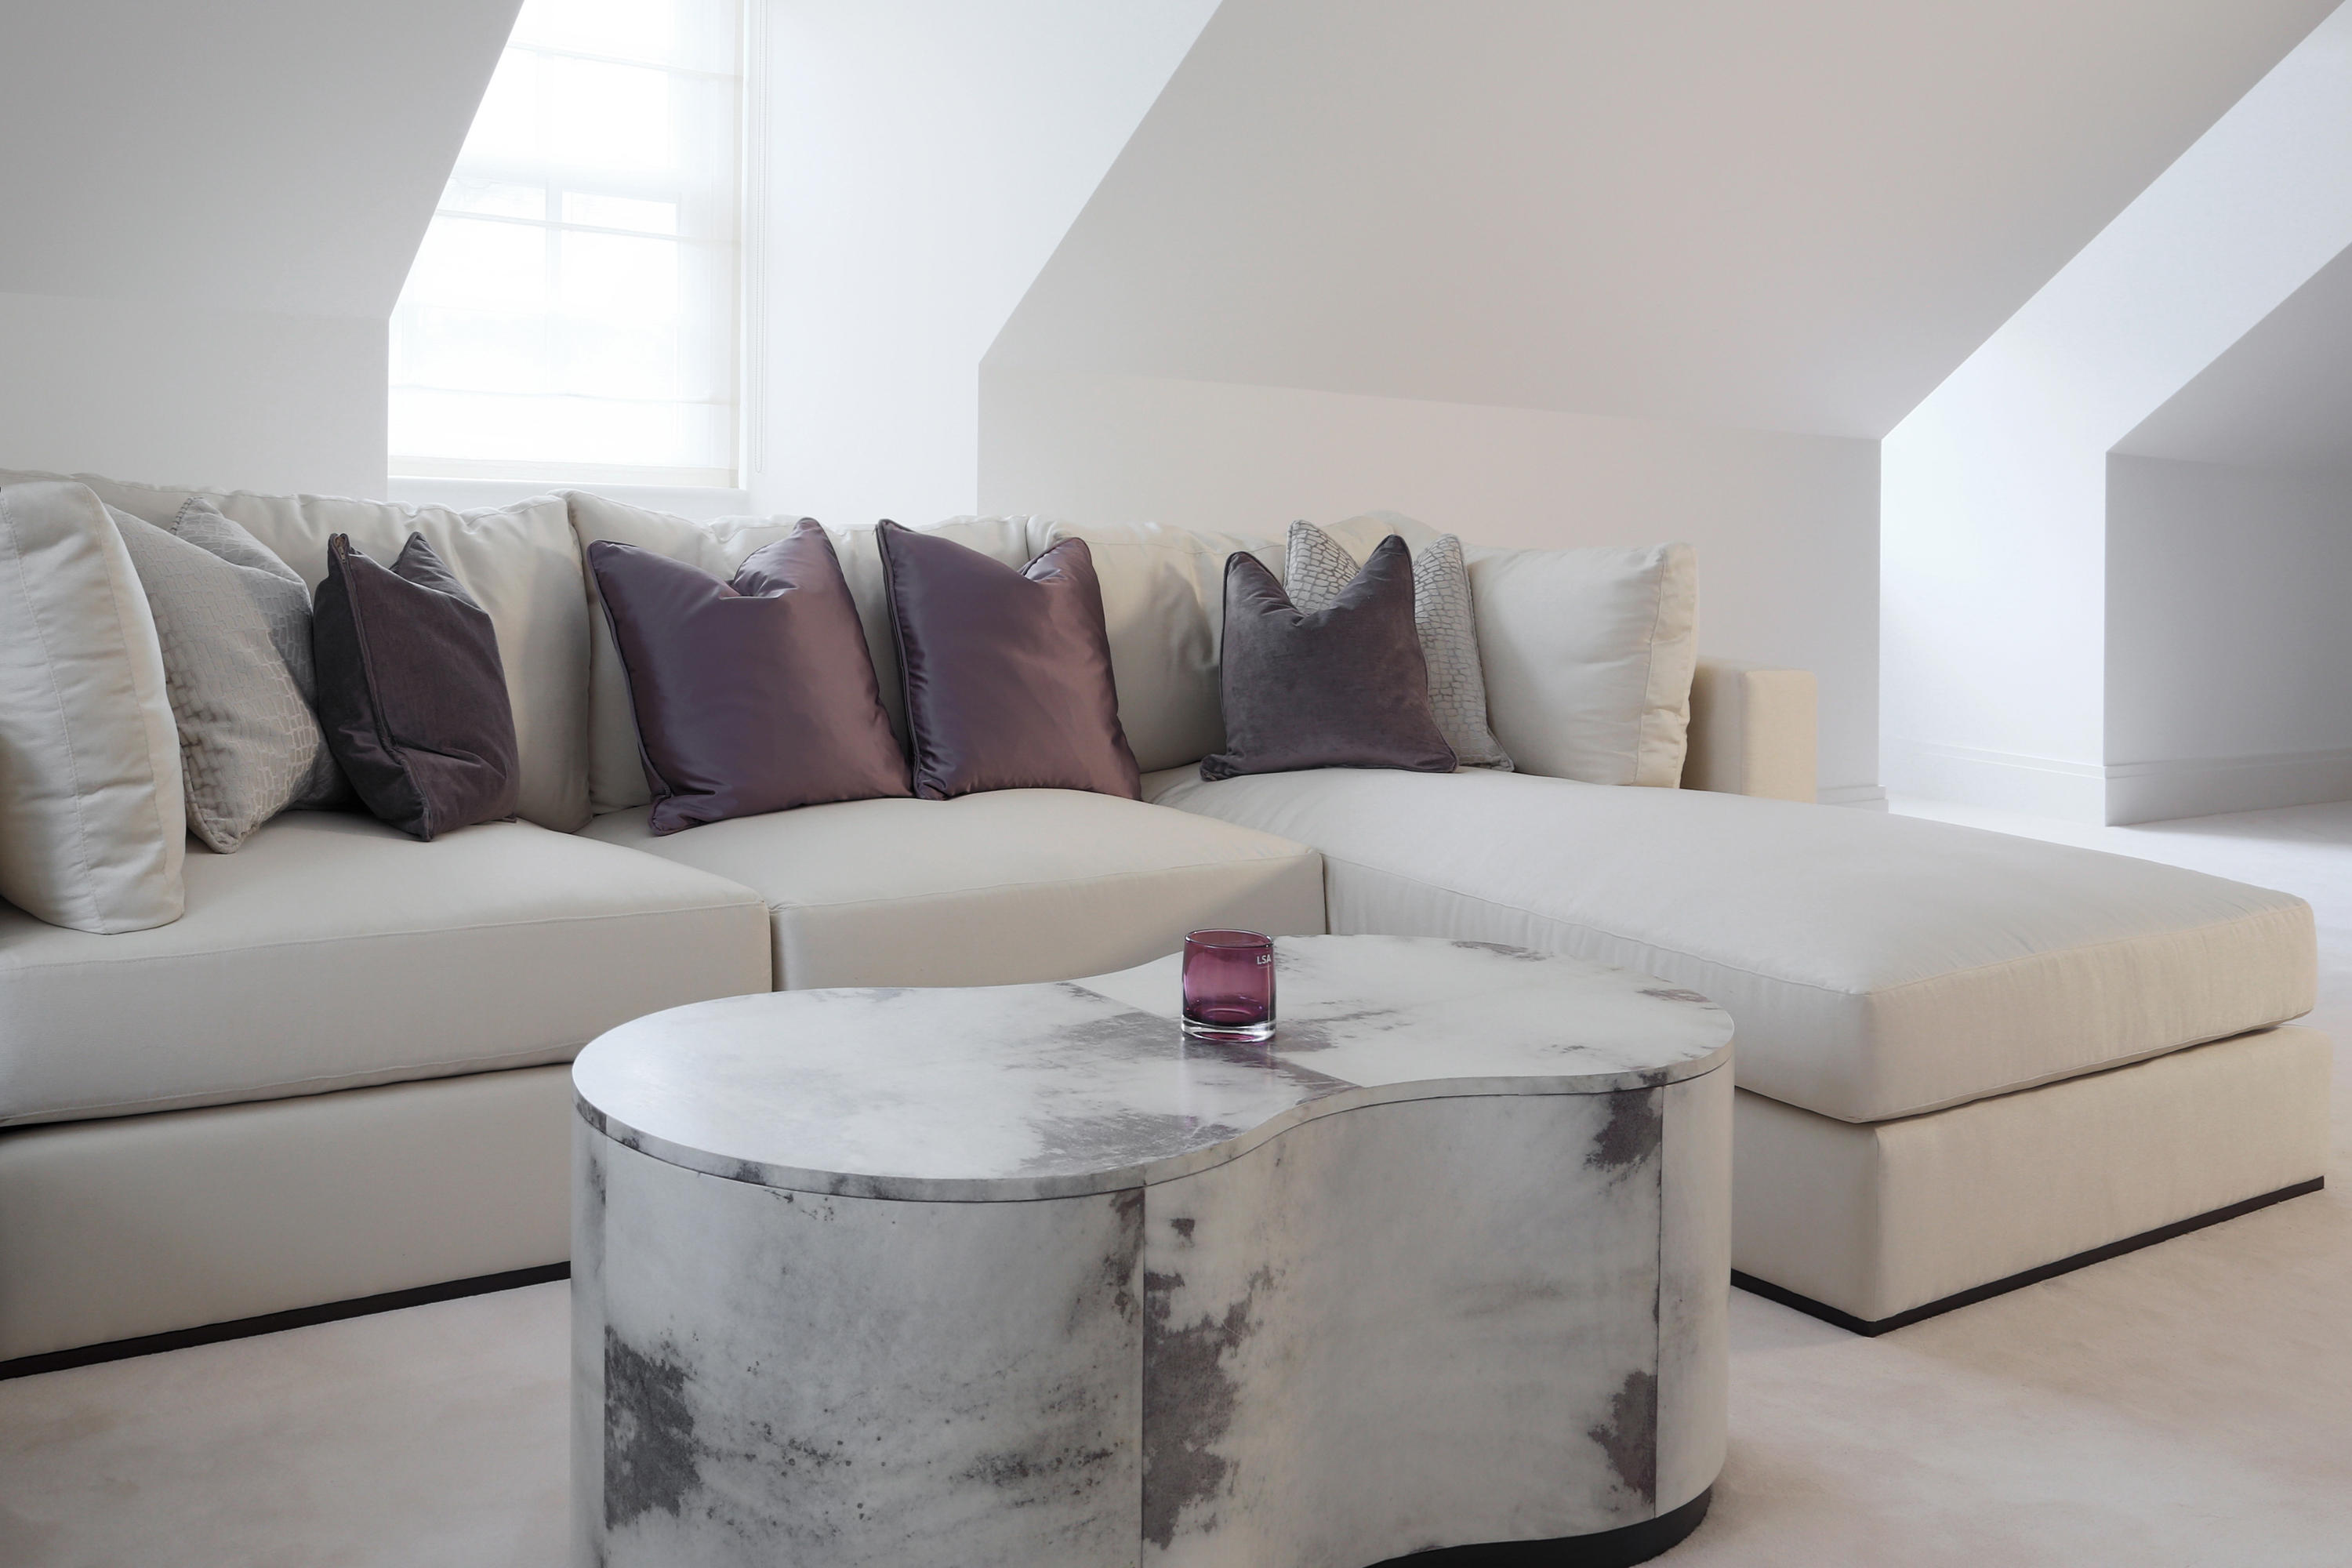 BRAQUE LARGE SOFA Lounge sofas from The Sofa & Chair pany Ltd